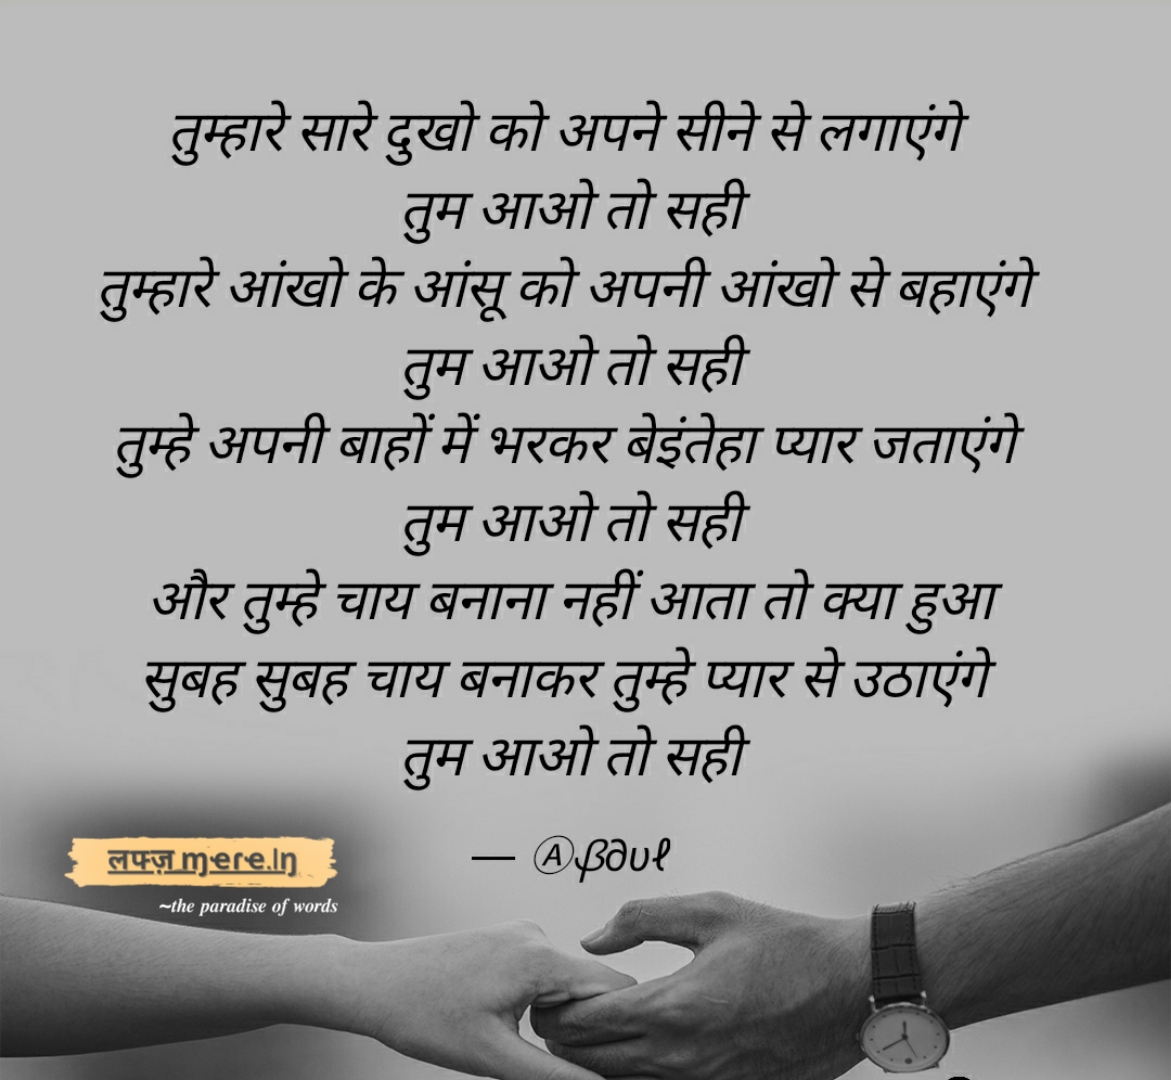 Hindi in most poetry romantic The Best